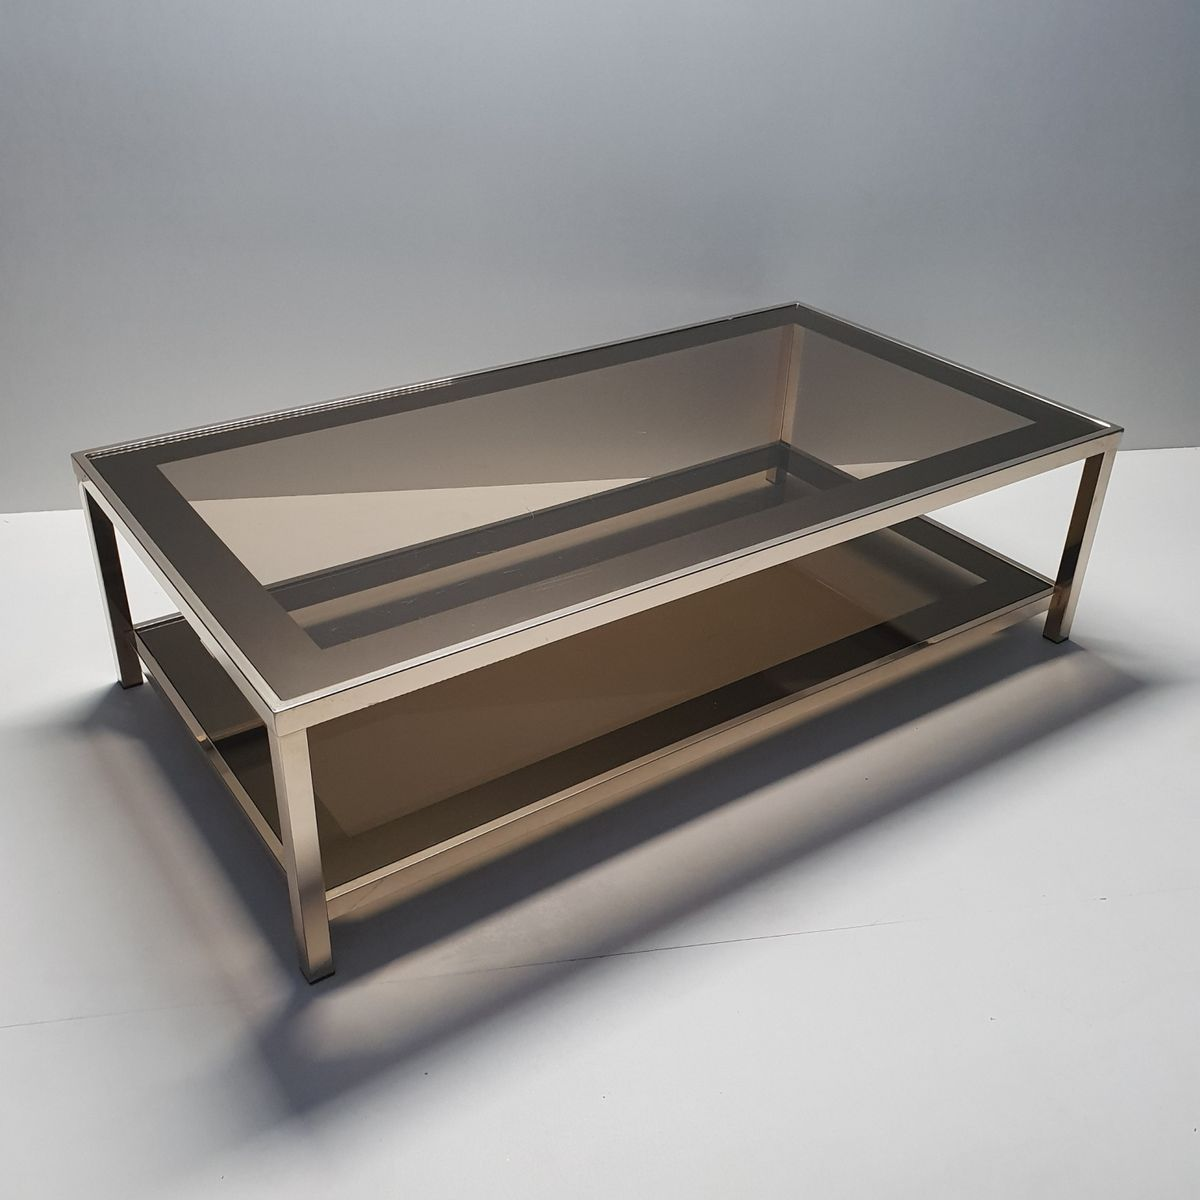 Gold Plated Coffee Table: Gold-Plated Coffee Table With Smoked Glass Shelves By